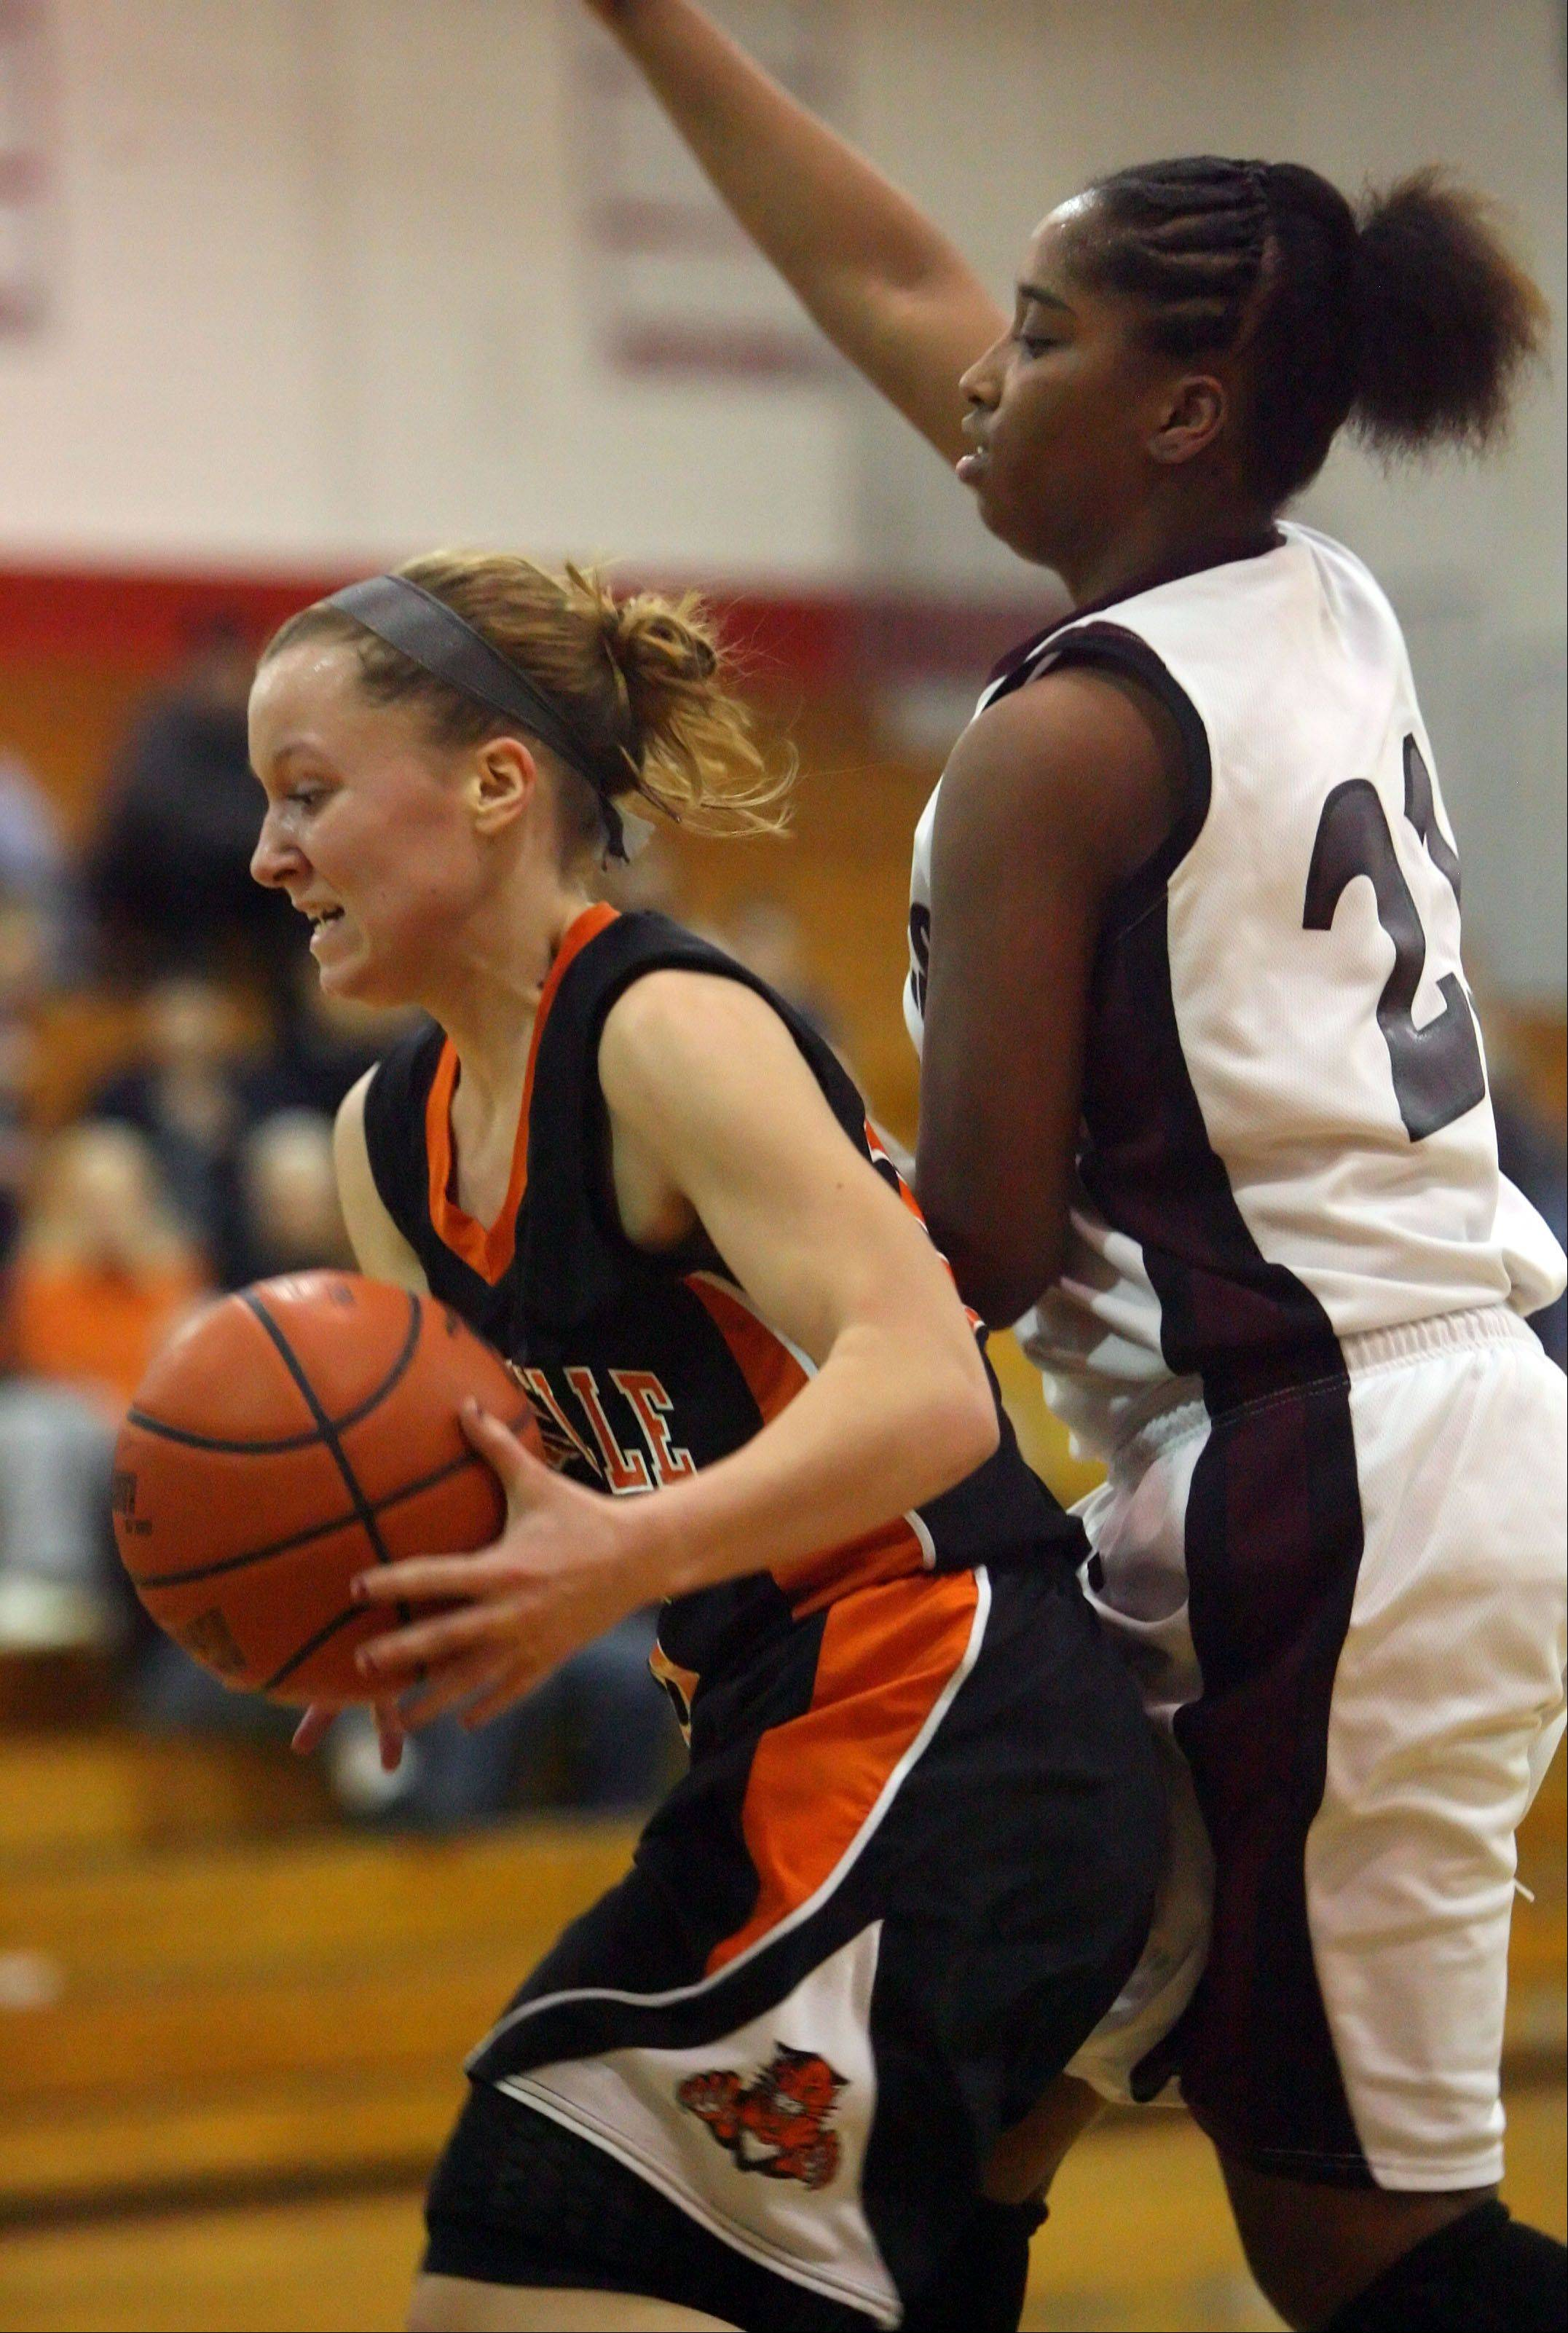 Images: Zion-Benton vs. Libertyville girls basketball